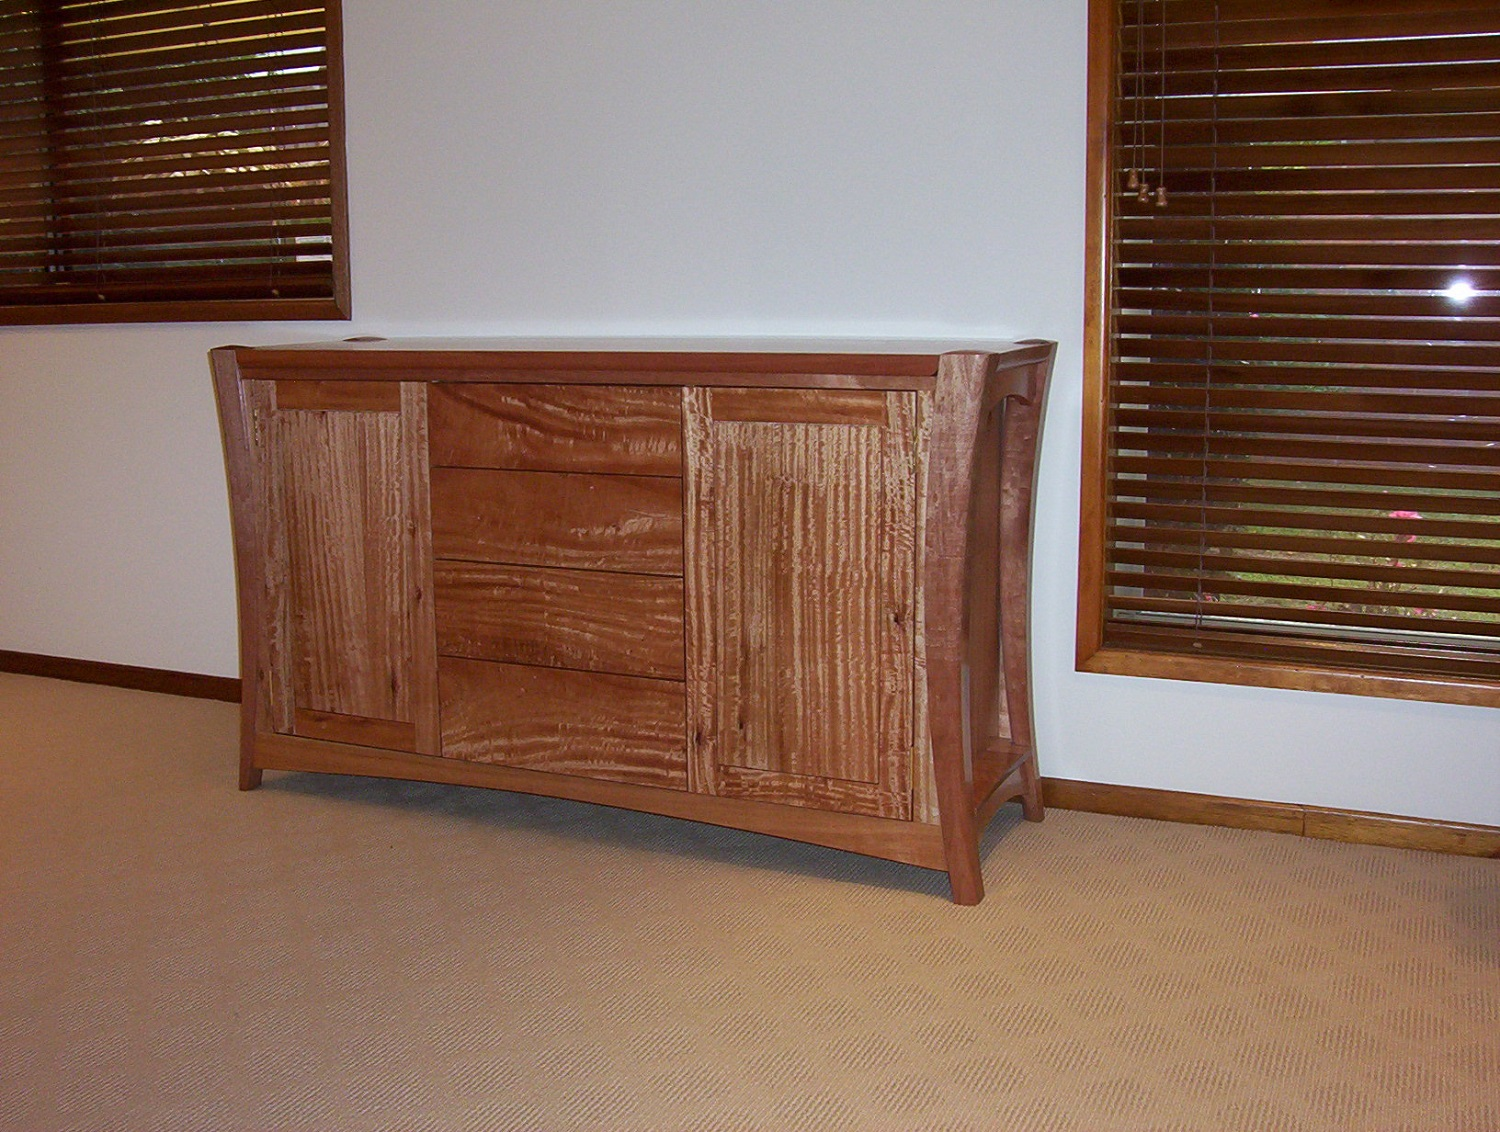 Using curved legs for the feature of this Sideboard. Once again Qld Maple is used for its striking detail